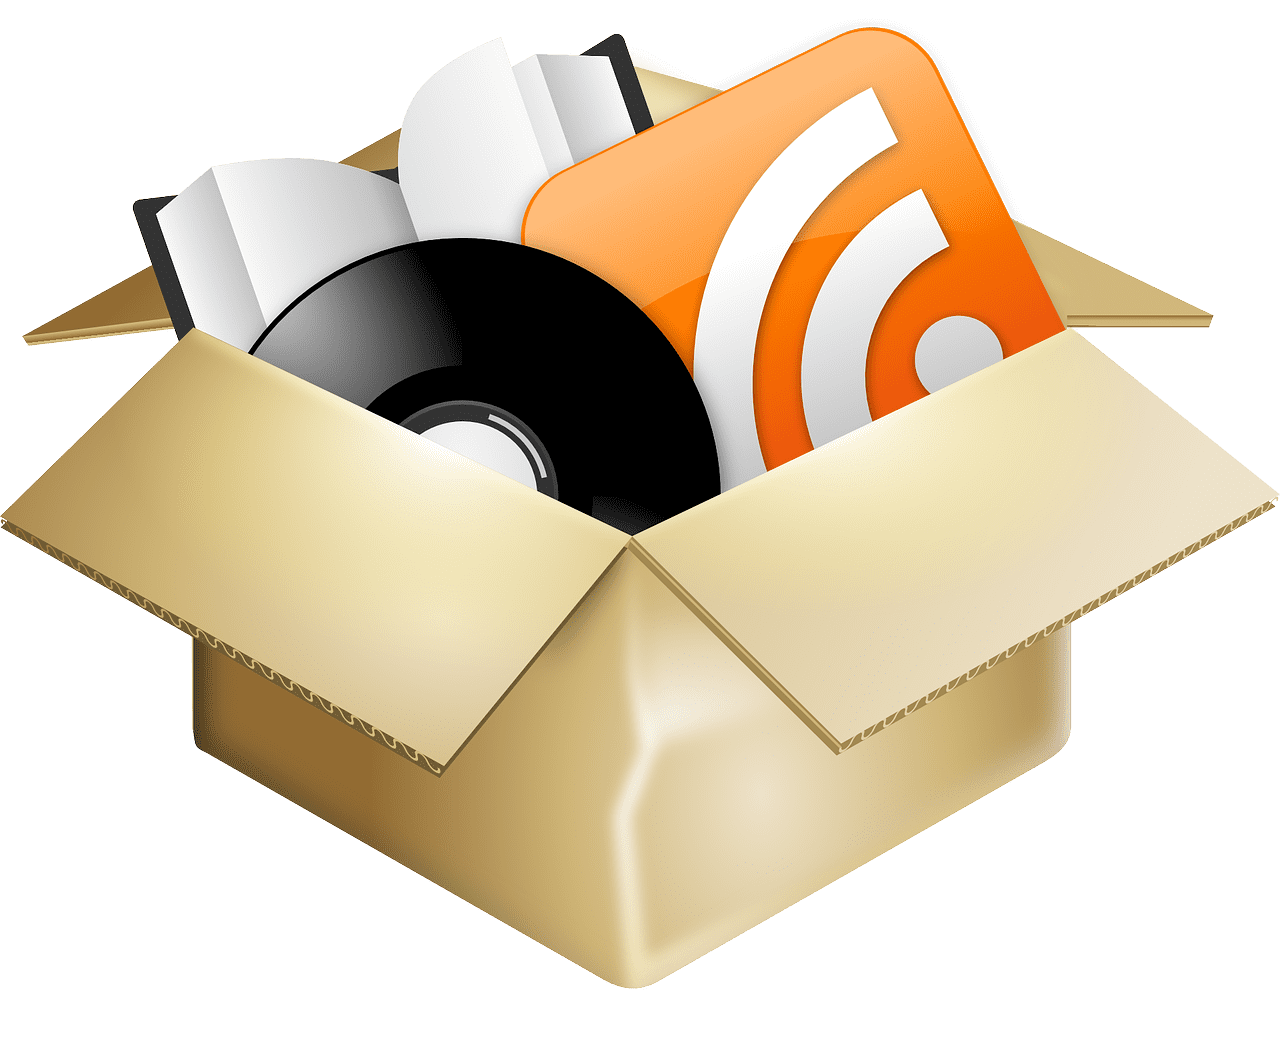 cardboard box with a book record and rss feed icon